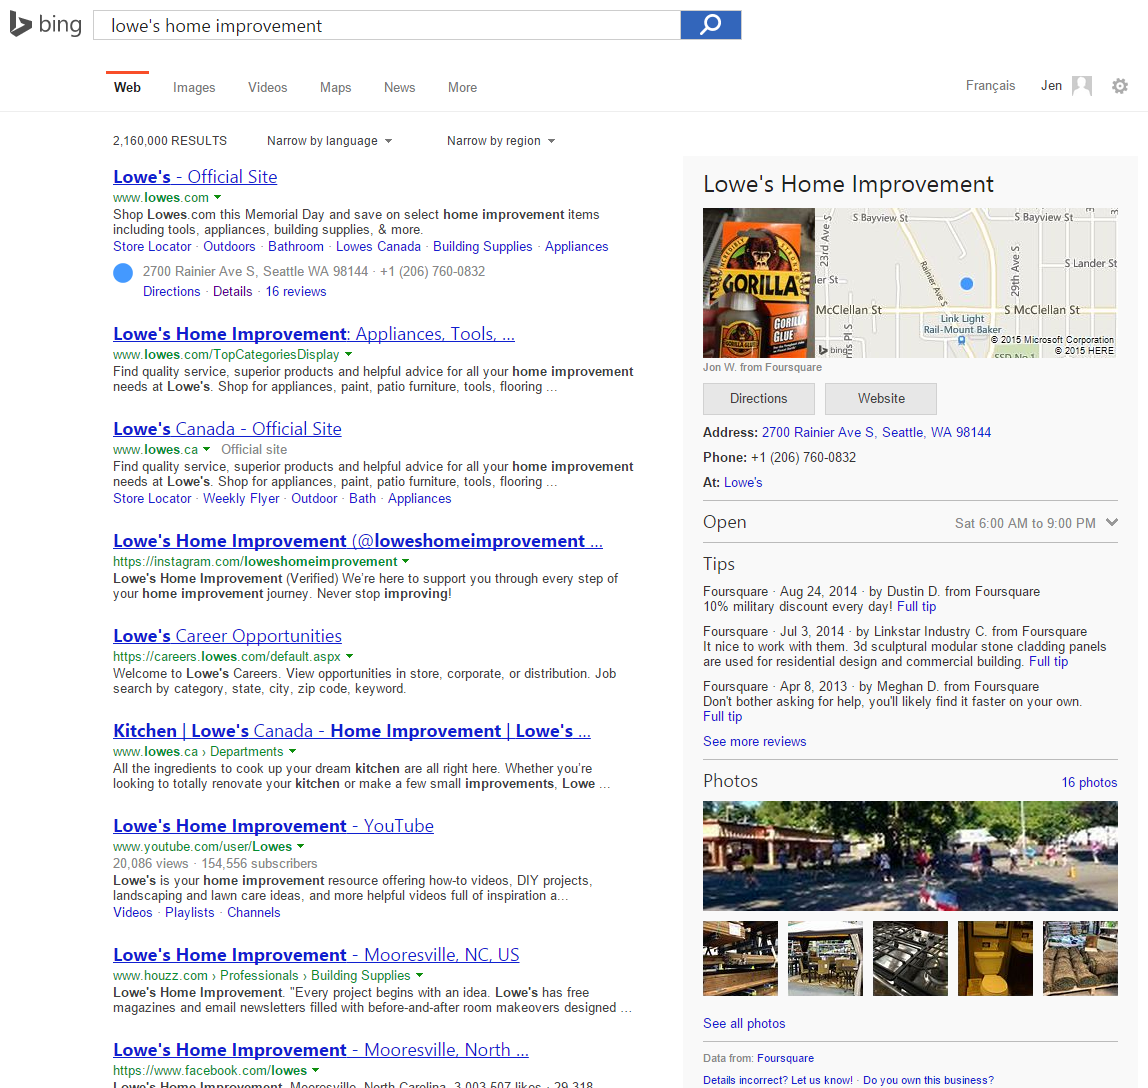 Bing Including Foursquare Photos & Tips in Local Knowledge ...